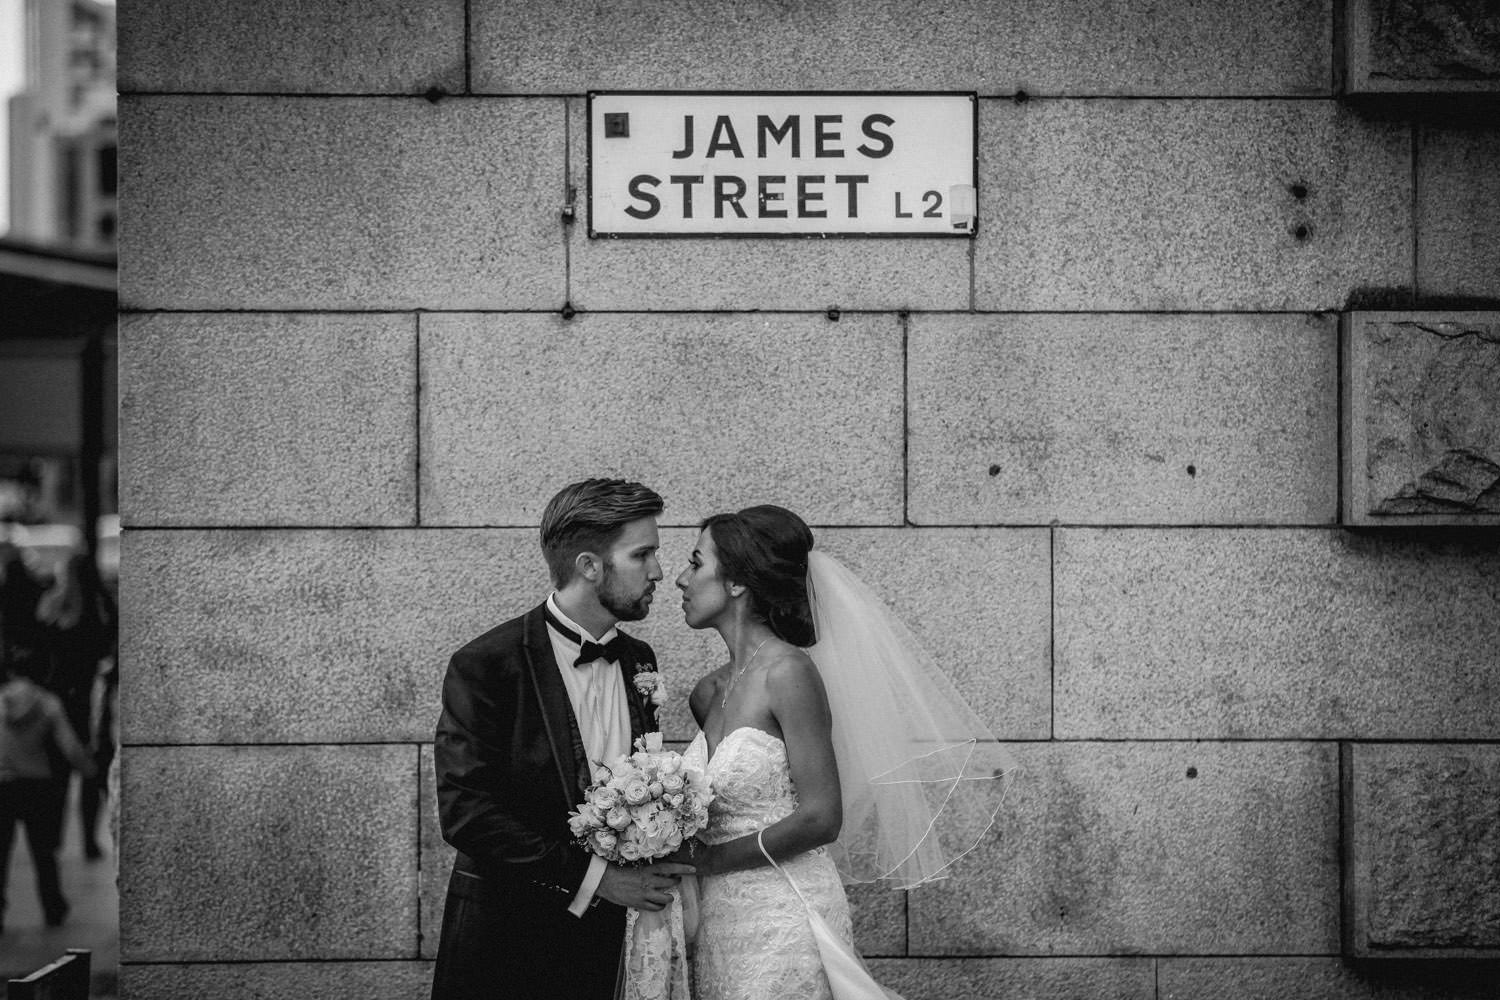 black and white wedding photo Bride and groom on street with 30 James Street sign Liverpool